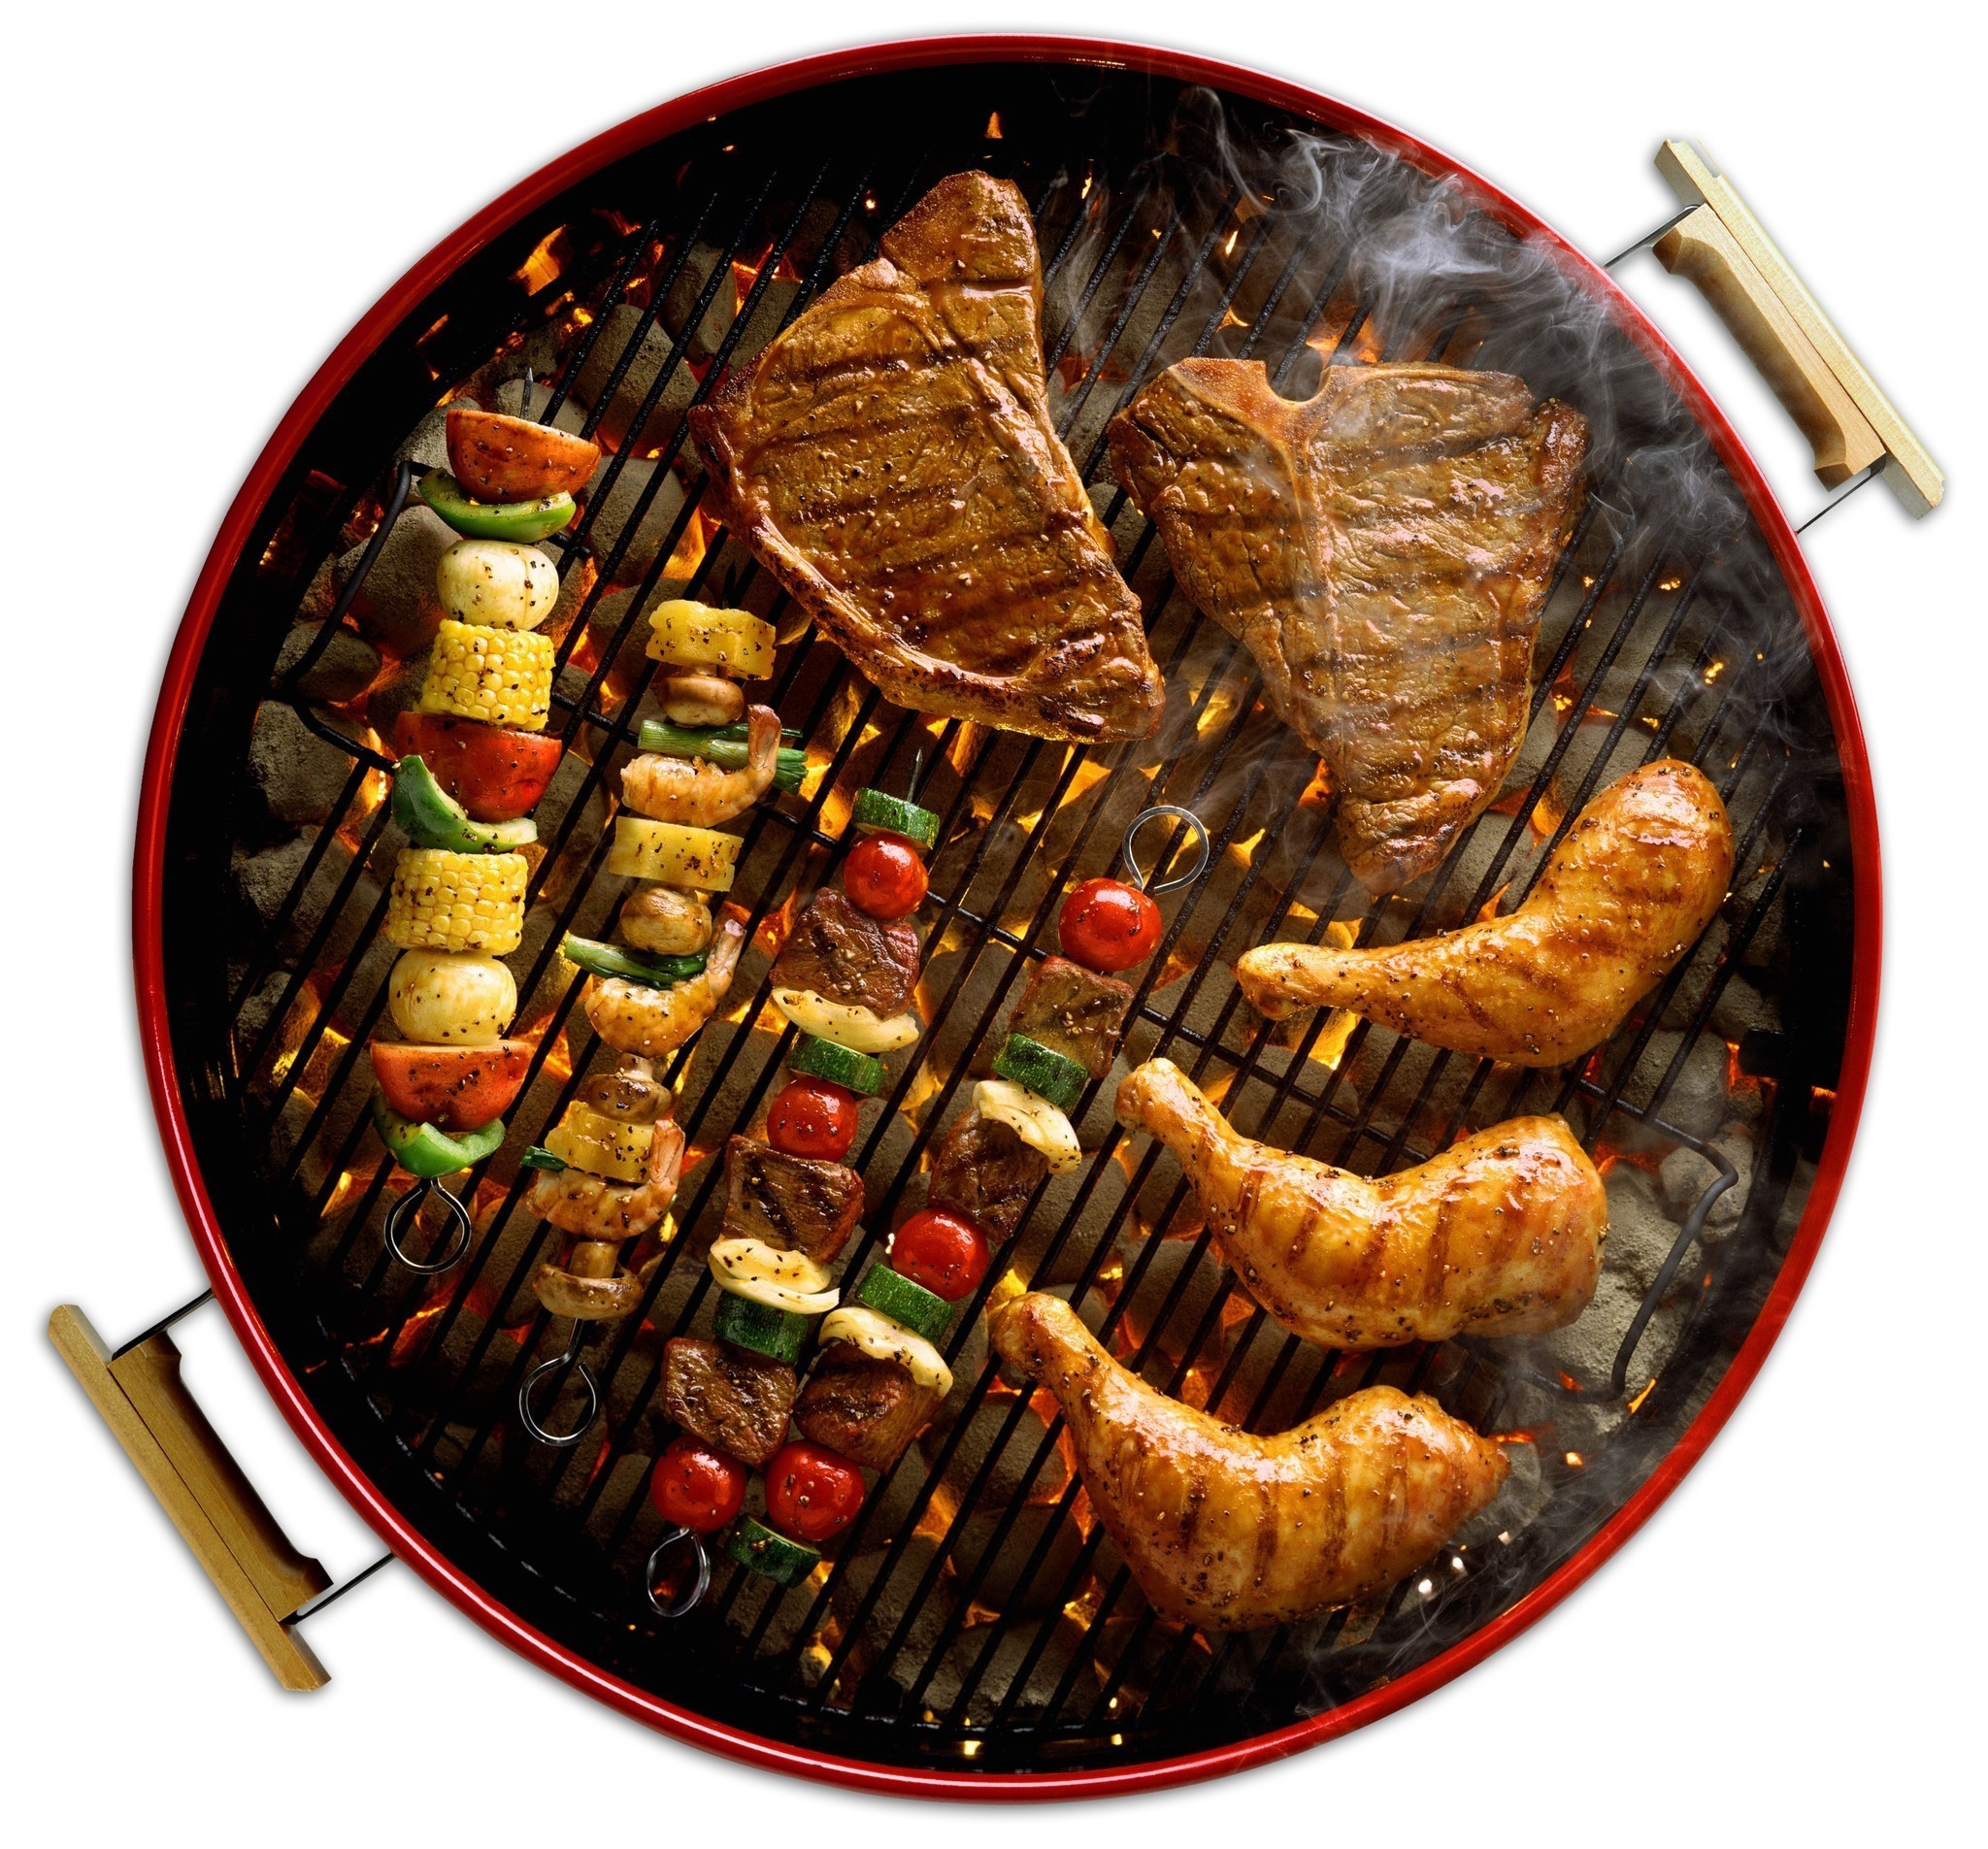 Do We Finally Know Whether Grilled Meat Causes Cancer